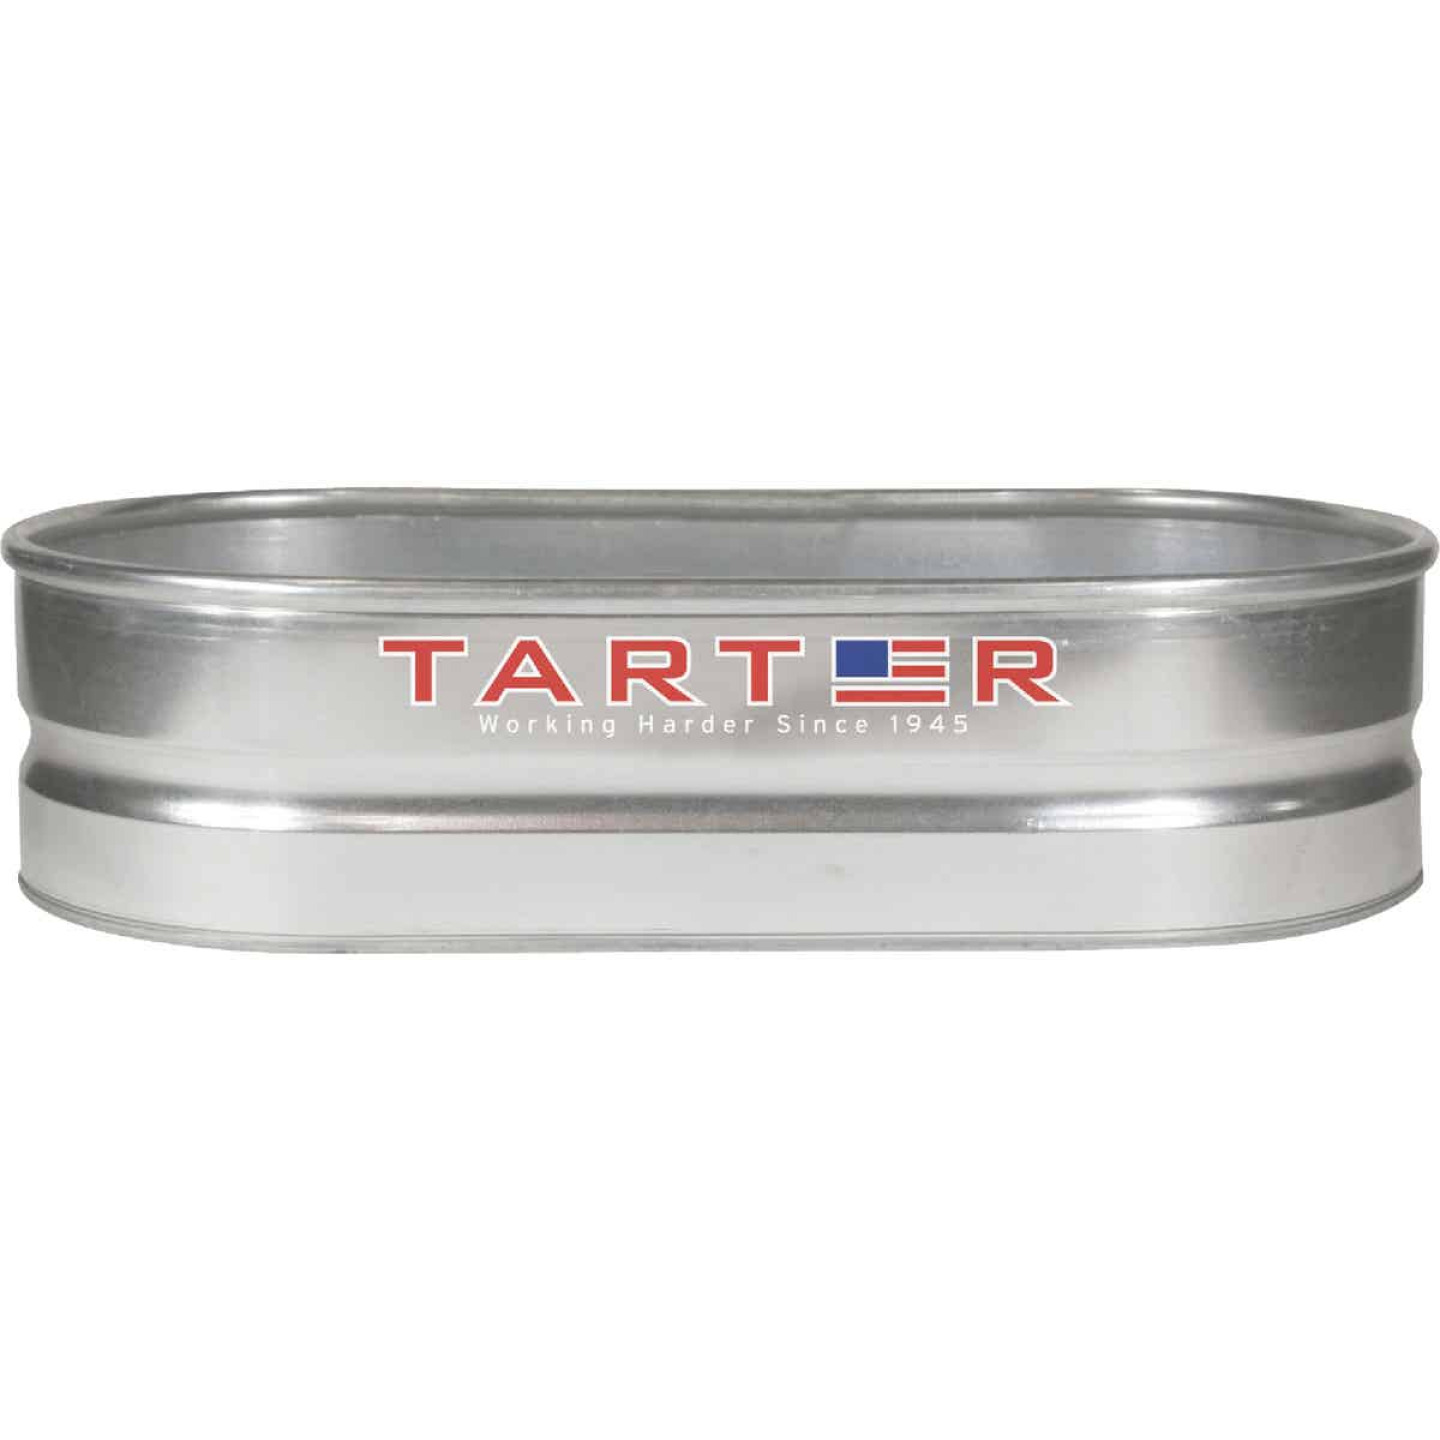 Tarter 40 Gal. Zinc-Coated Steel Galvanized Stock Tank Image 1